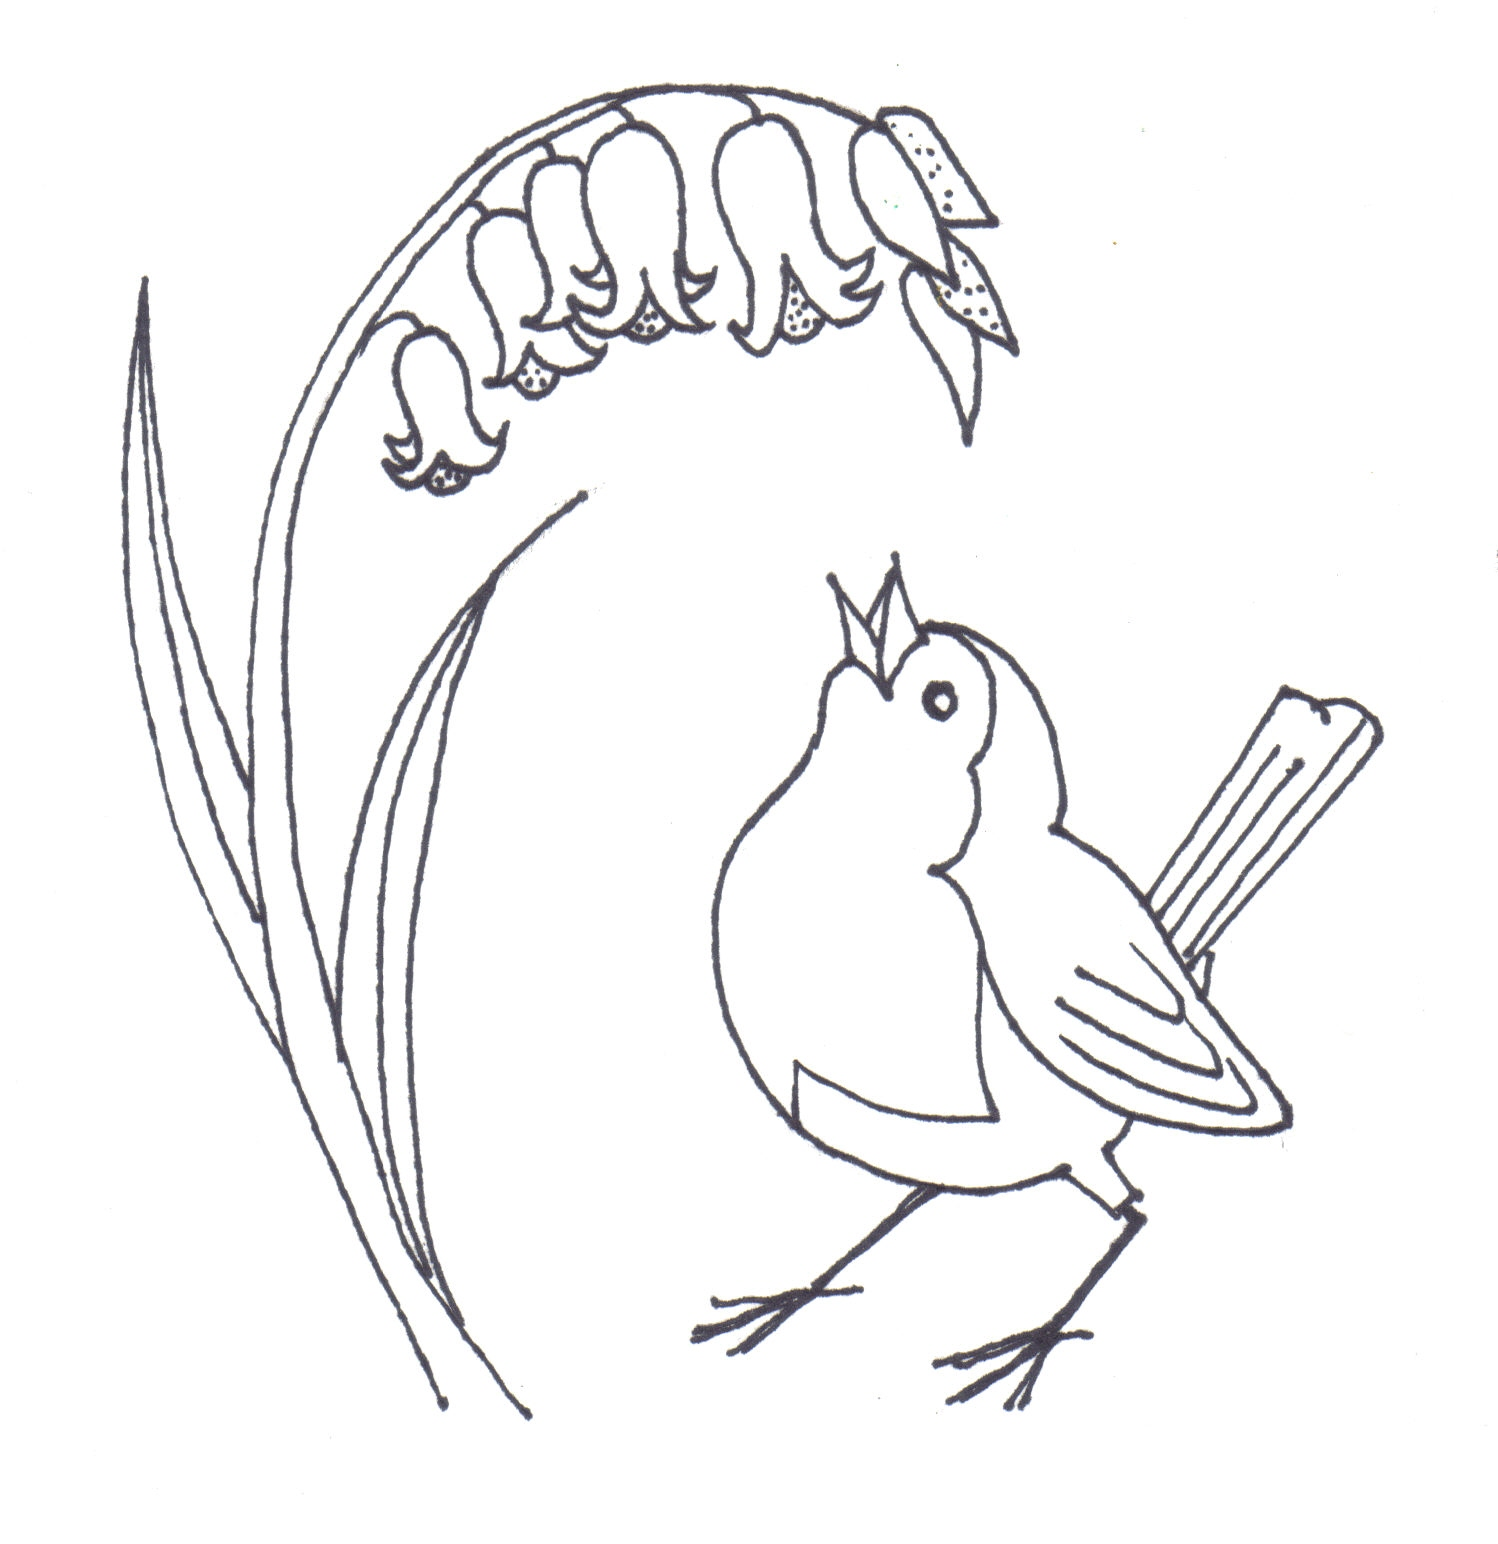 Bird clip art easy. Simple line drawing at